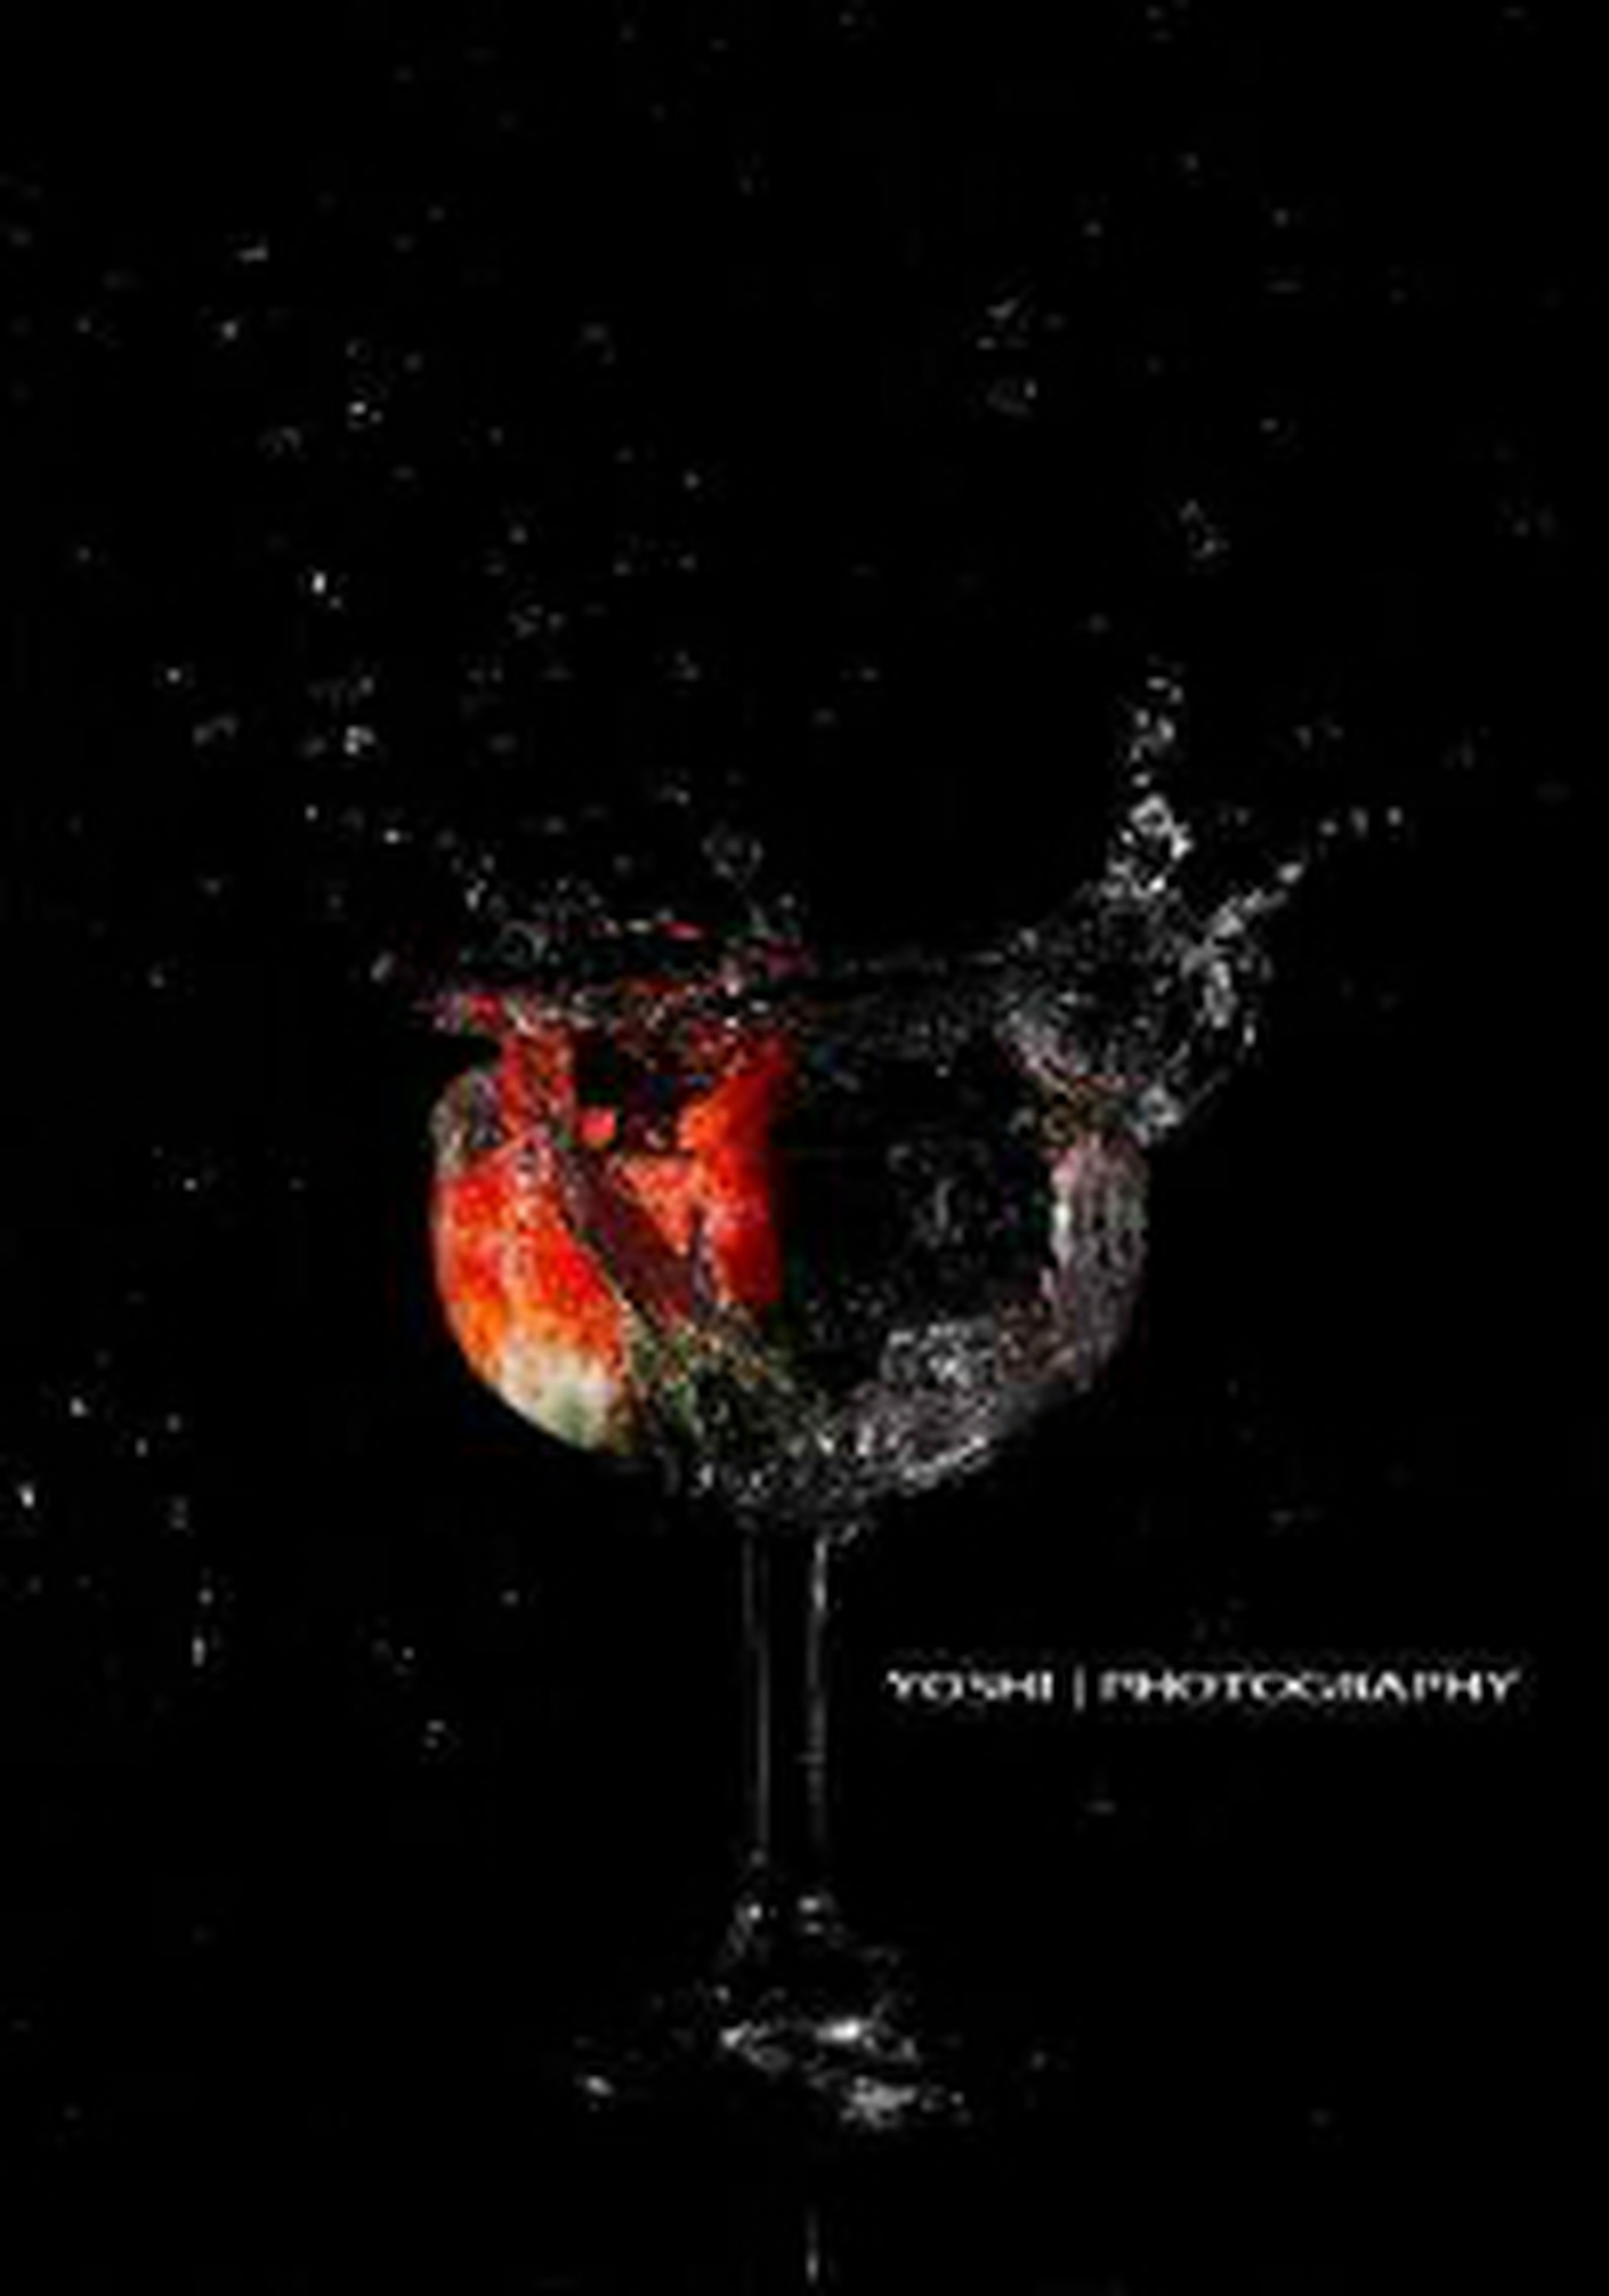 indoors, close-up, black background, studio shot, burning, still life, water, night, flame, dark, no people, copy space, heat - temperature, glass - material, food and drink, reflection, fire - natural phenomenon, motion, glowing, illuminated